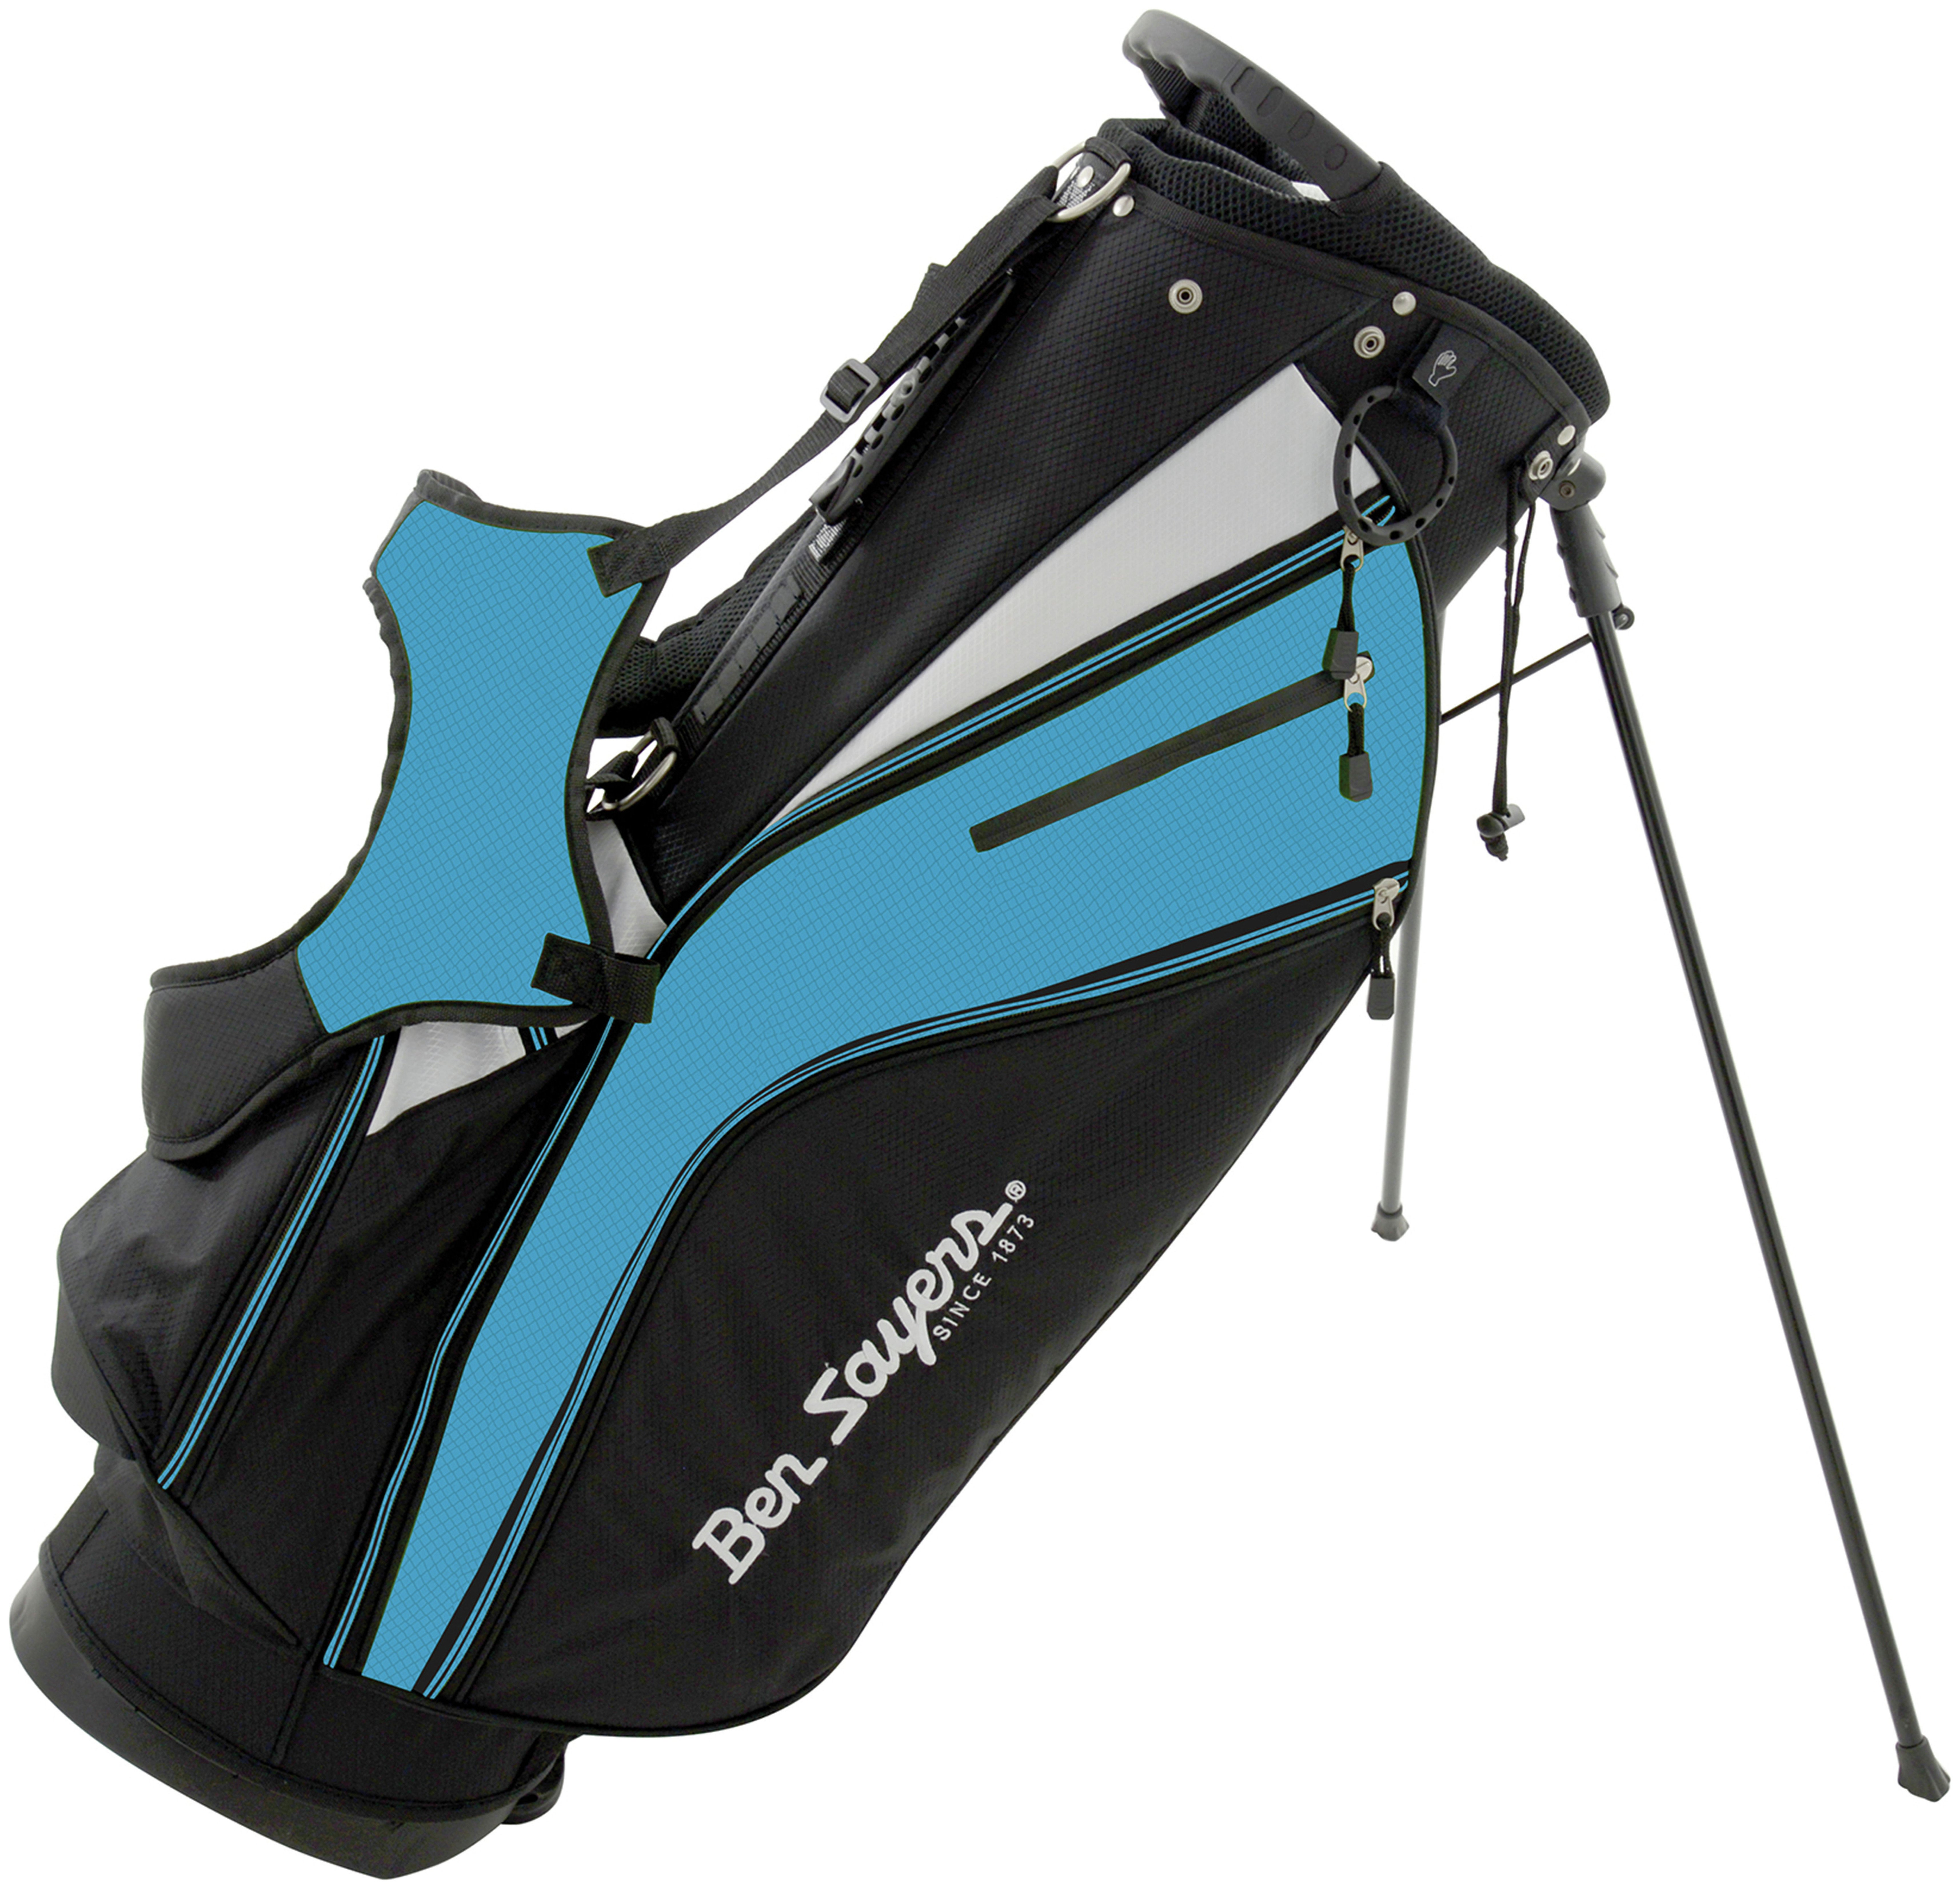 Image of Ben Sayers - X-Lite Stand Bag - Black/Blue